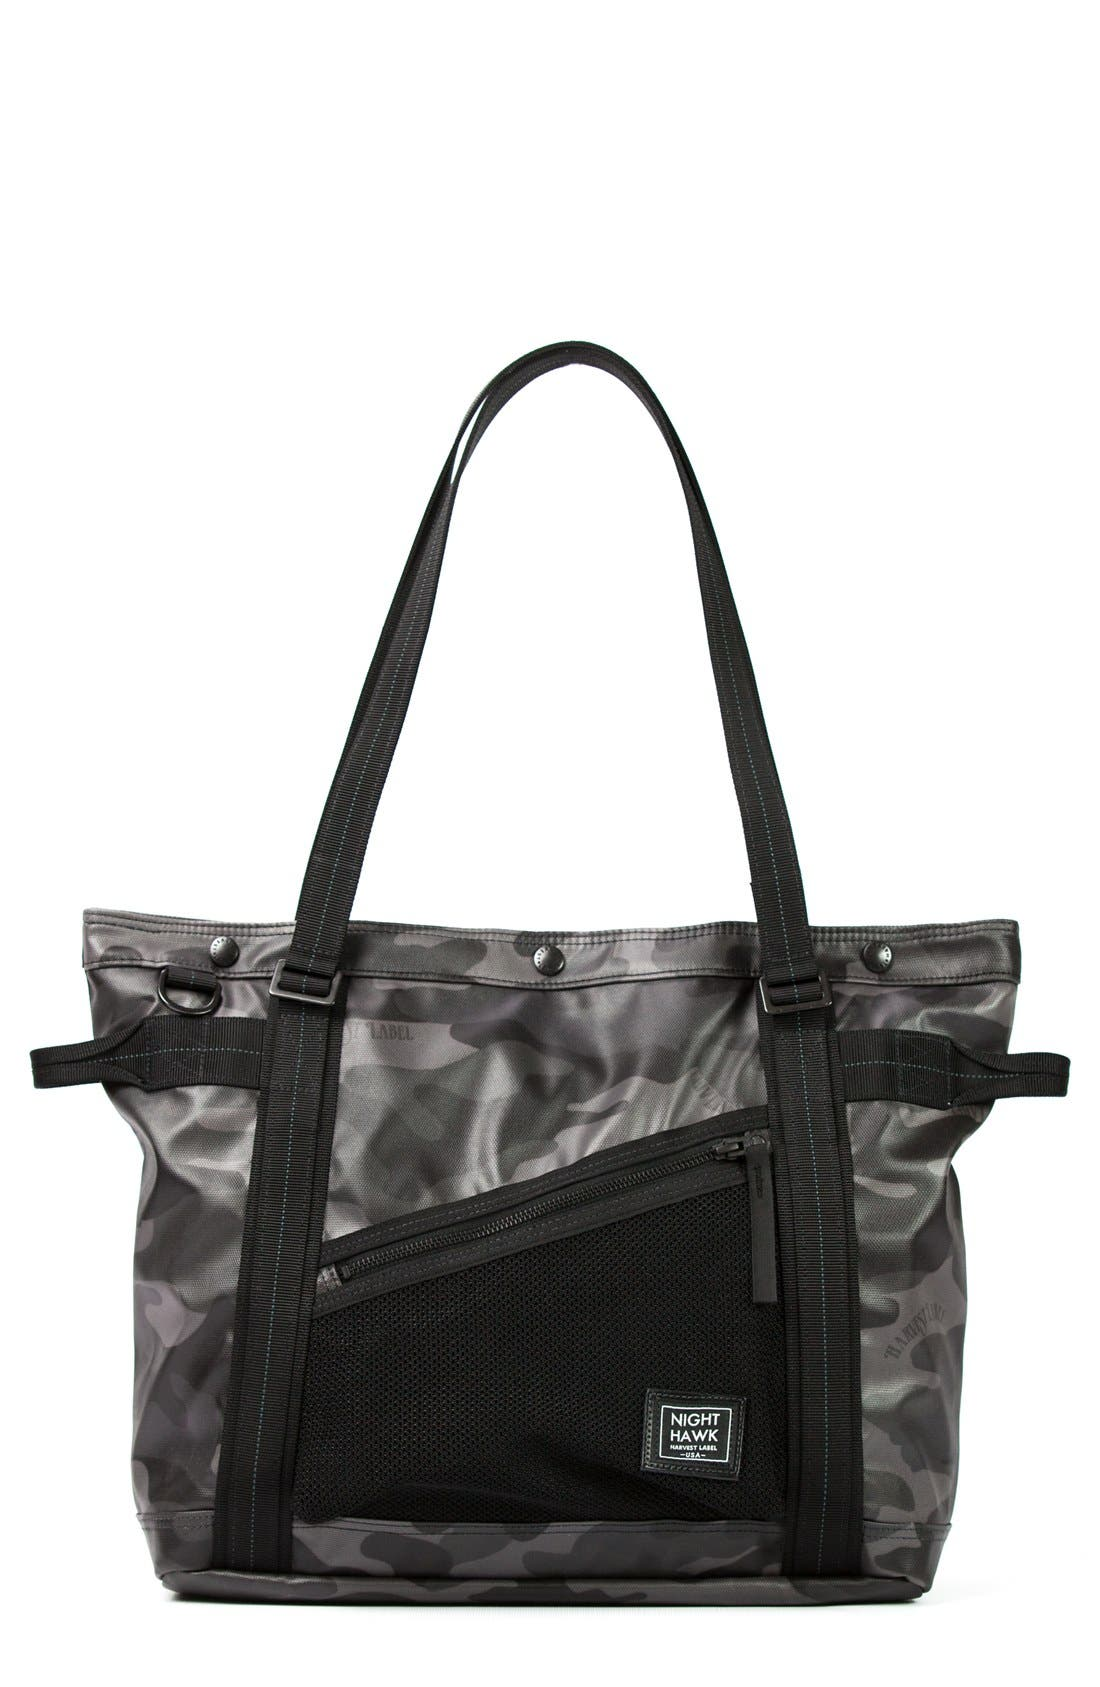 HARVEST LABEL NightHawk Tote Bag